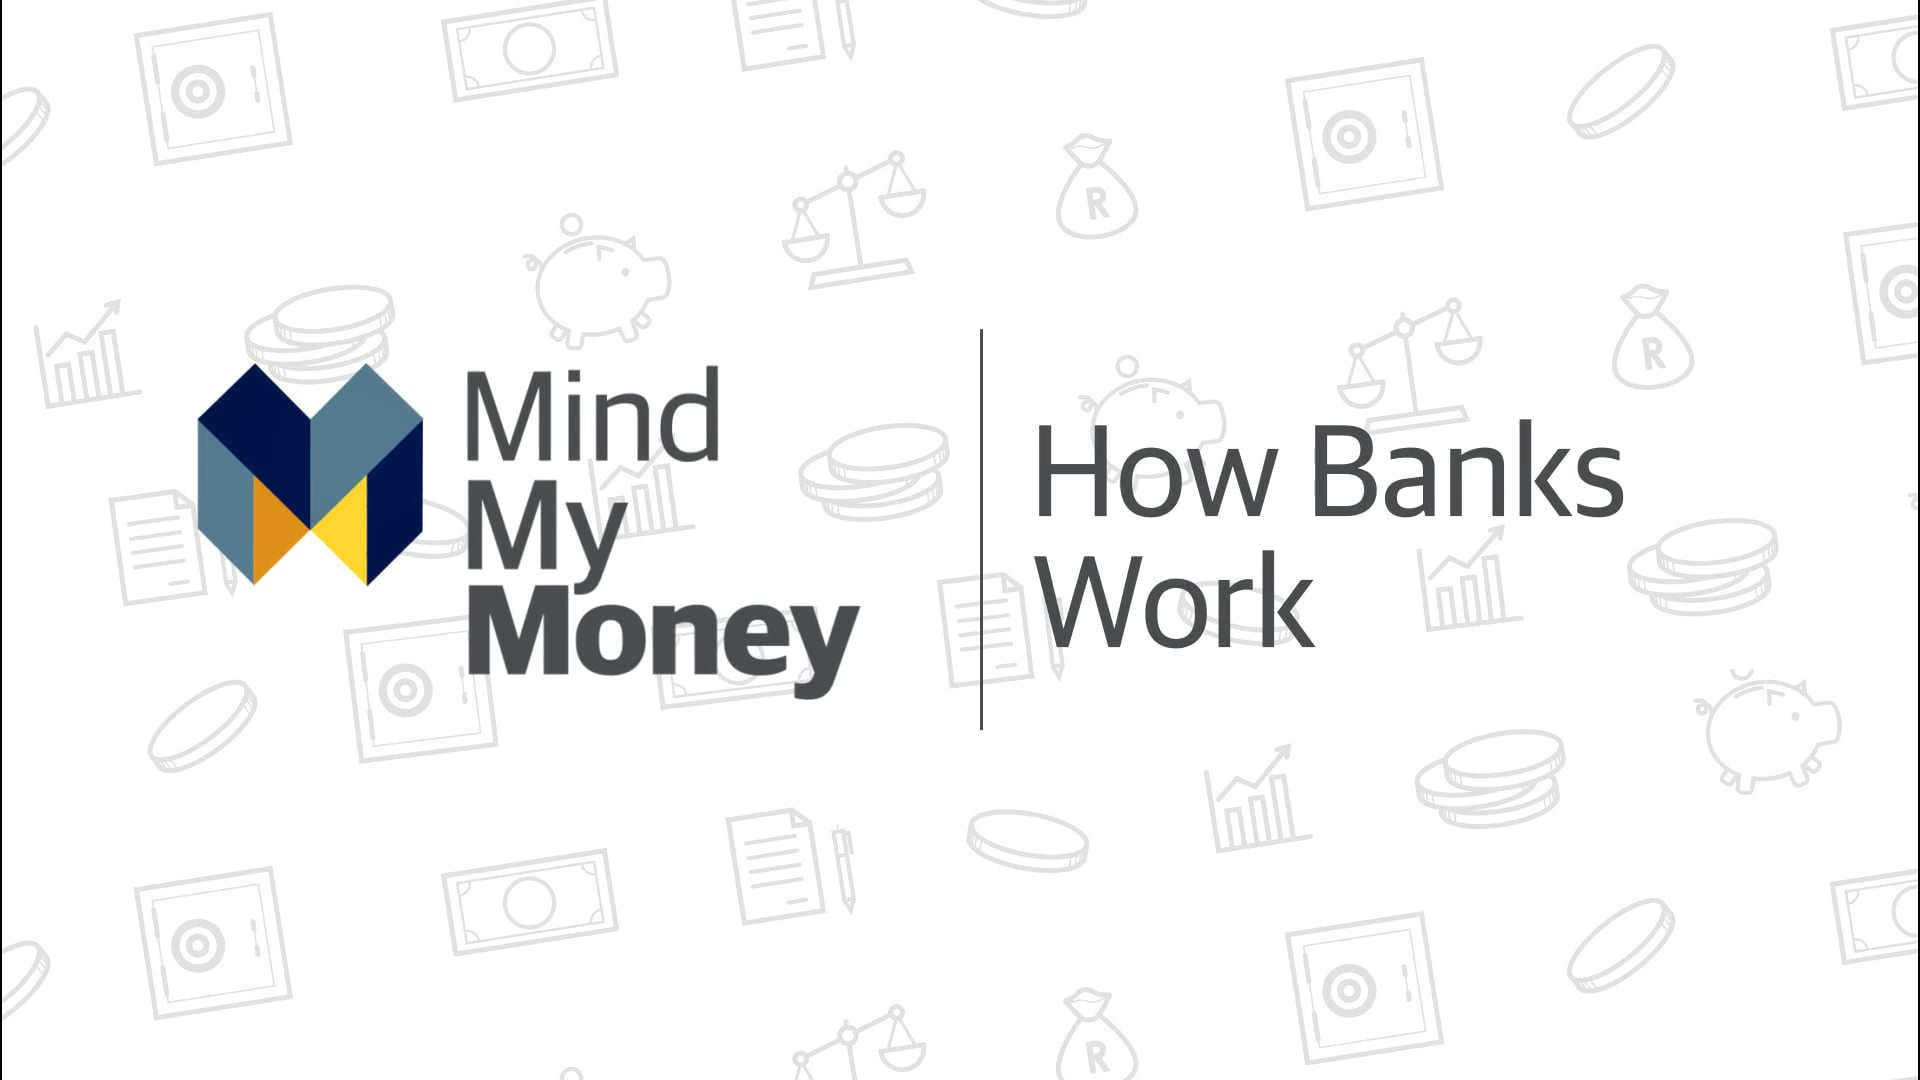 How Banks Work